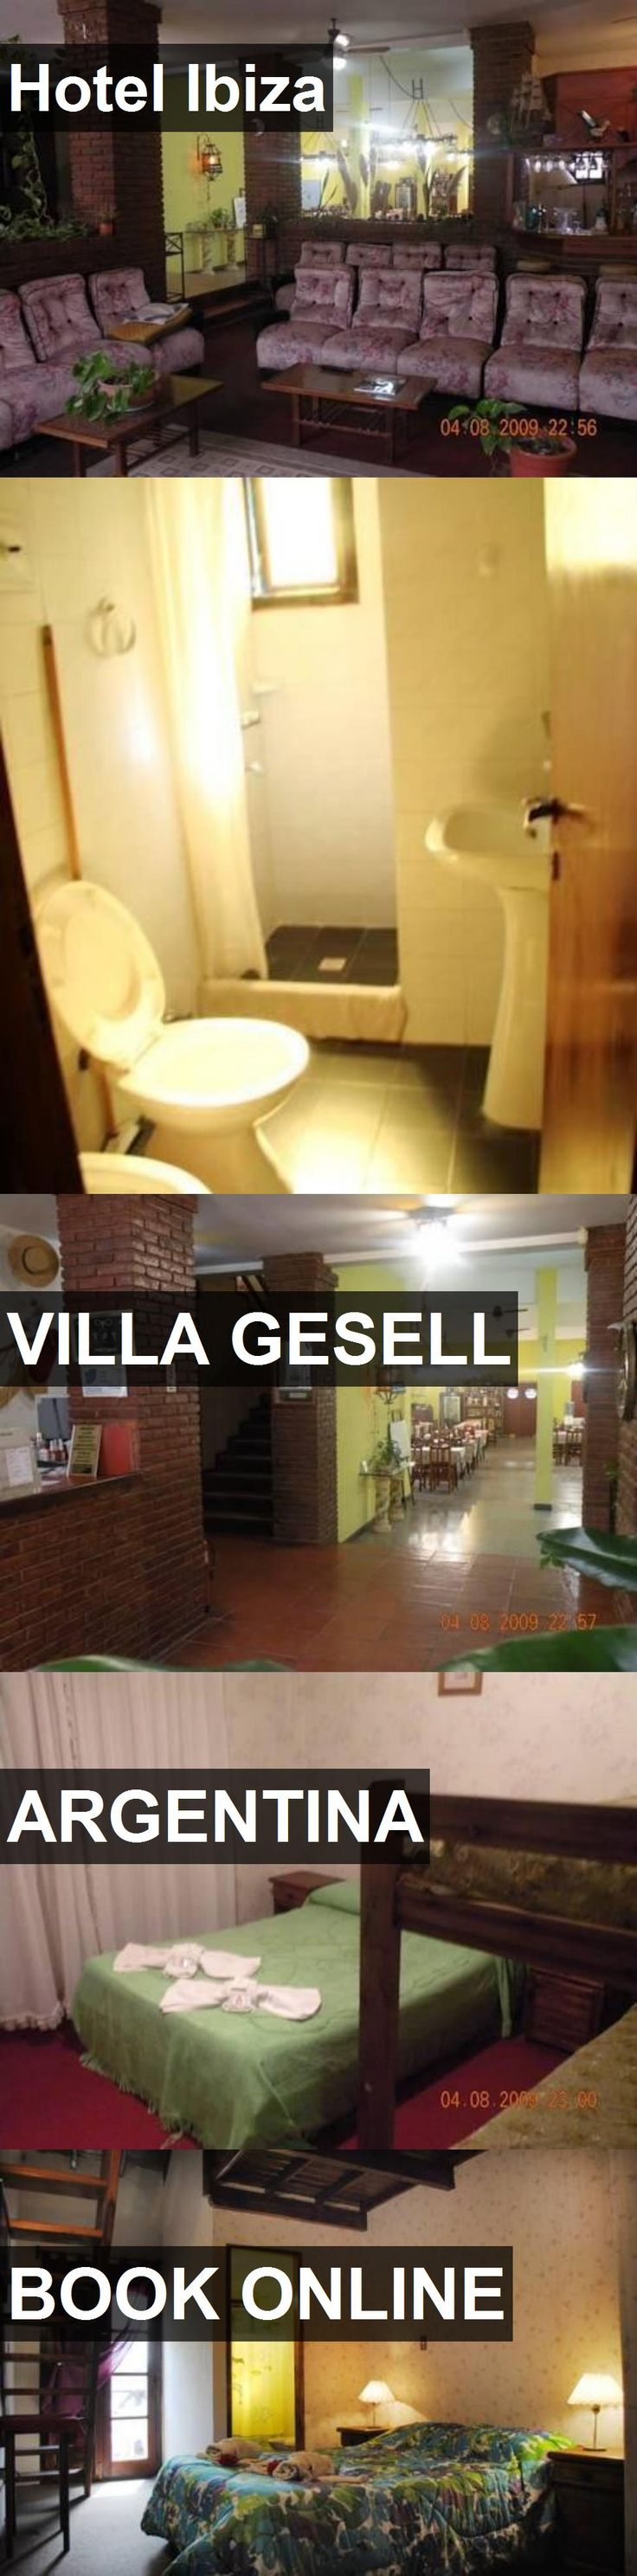 Hotel Hotel Ibiza in Villa Gesell, Argentina. For more information, photos, reviews and best prices please follow the link. #Argentina #VillaGesell #HotelIbiza #hotel #travel #vacation